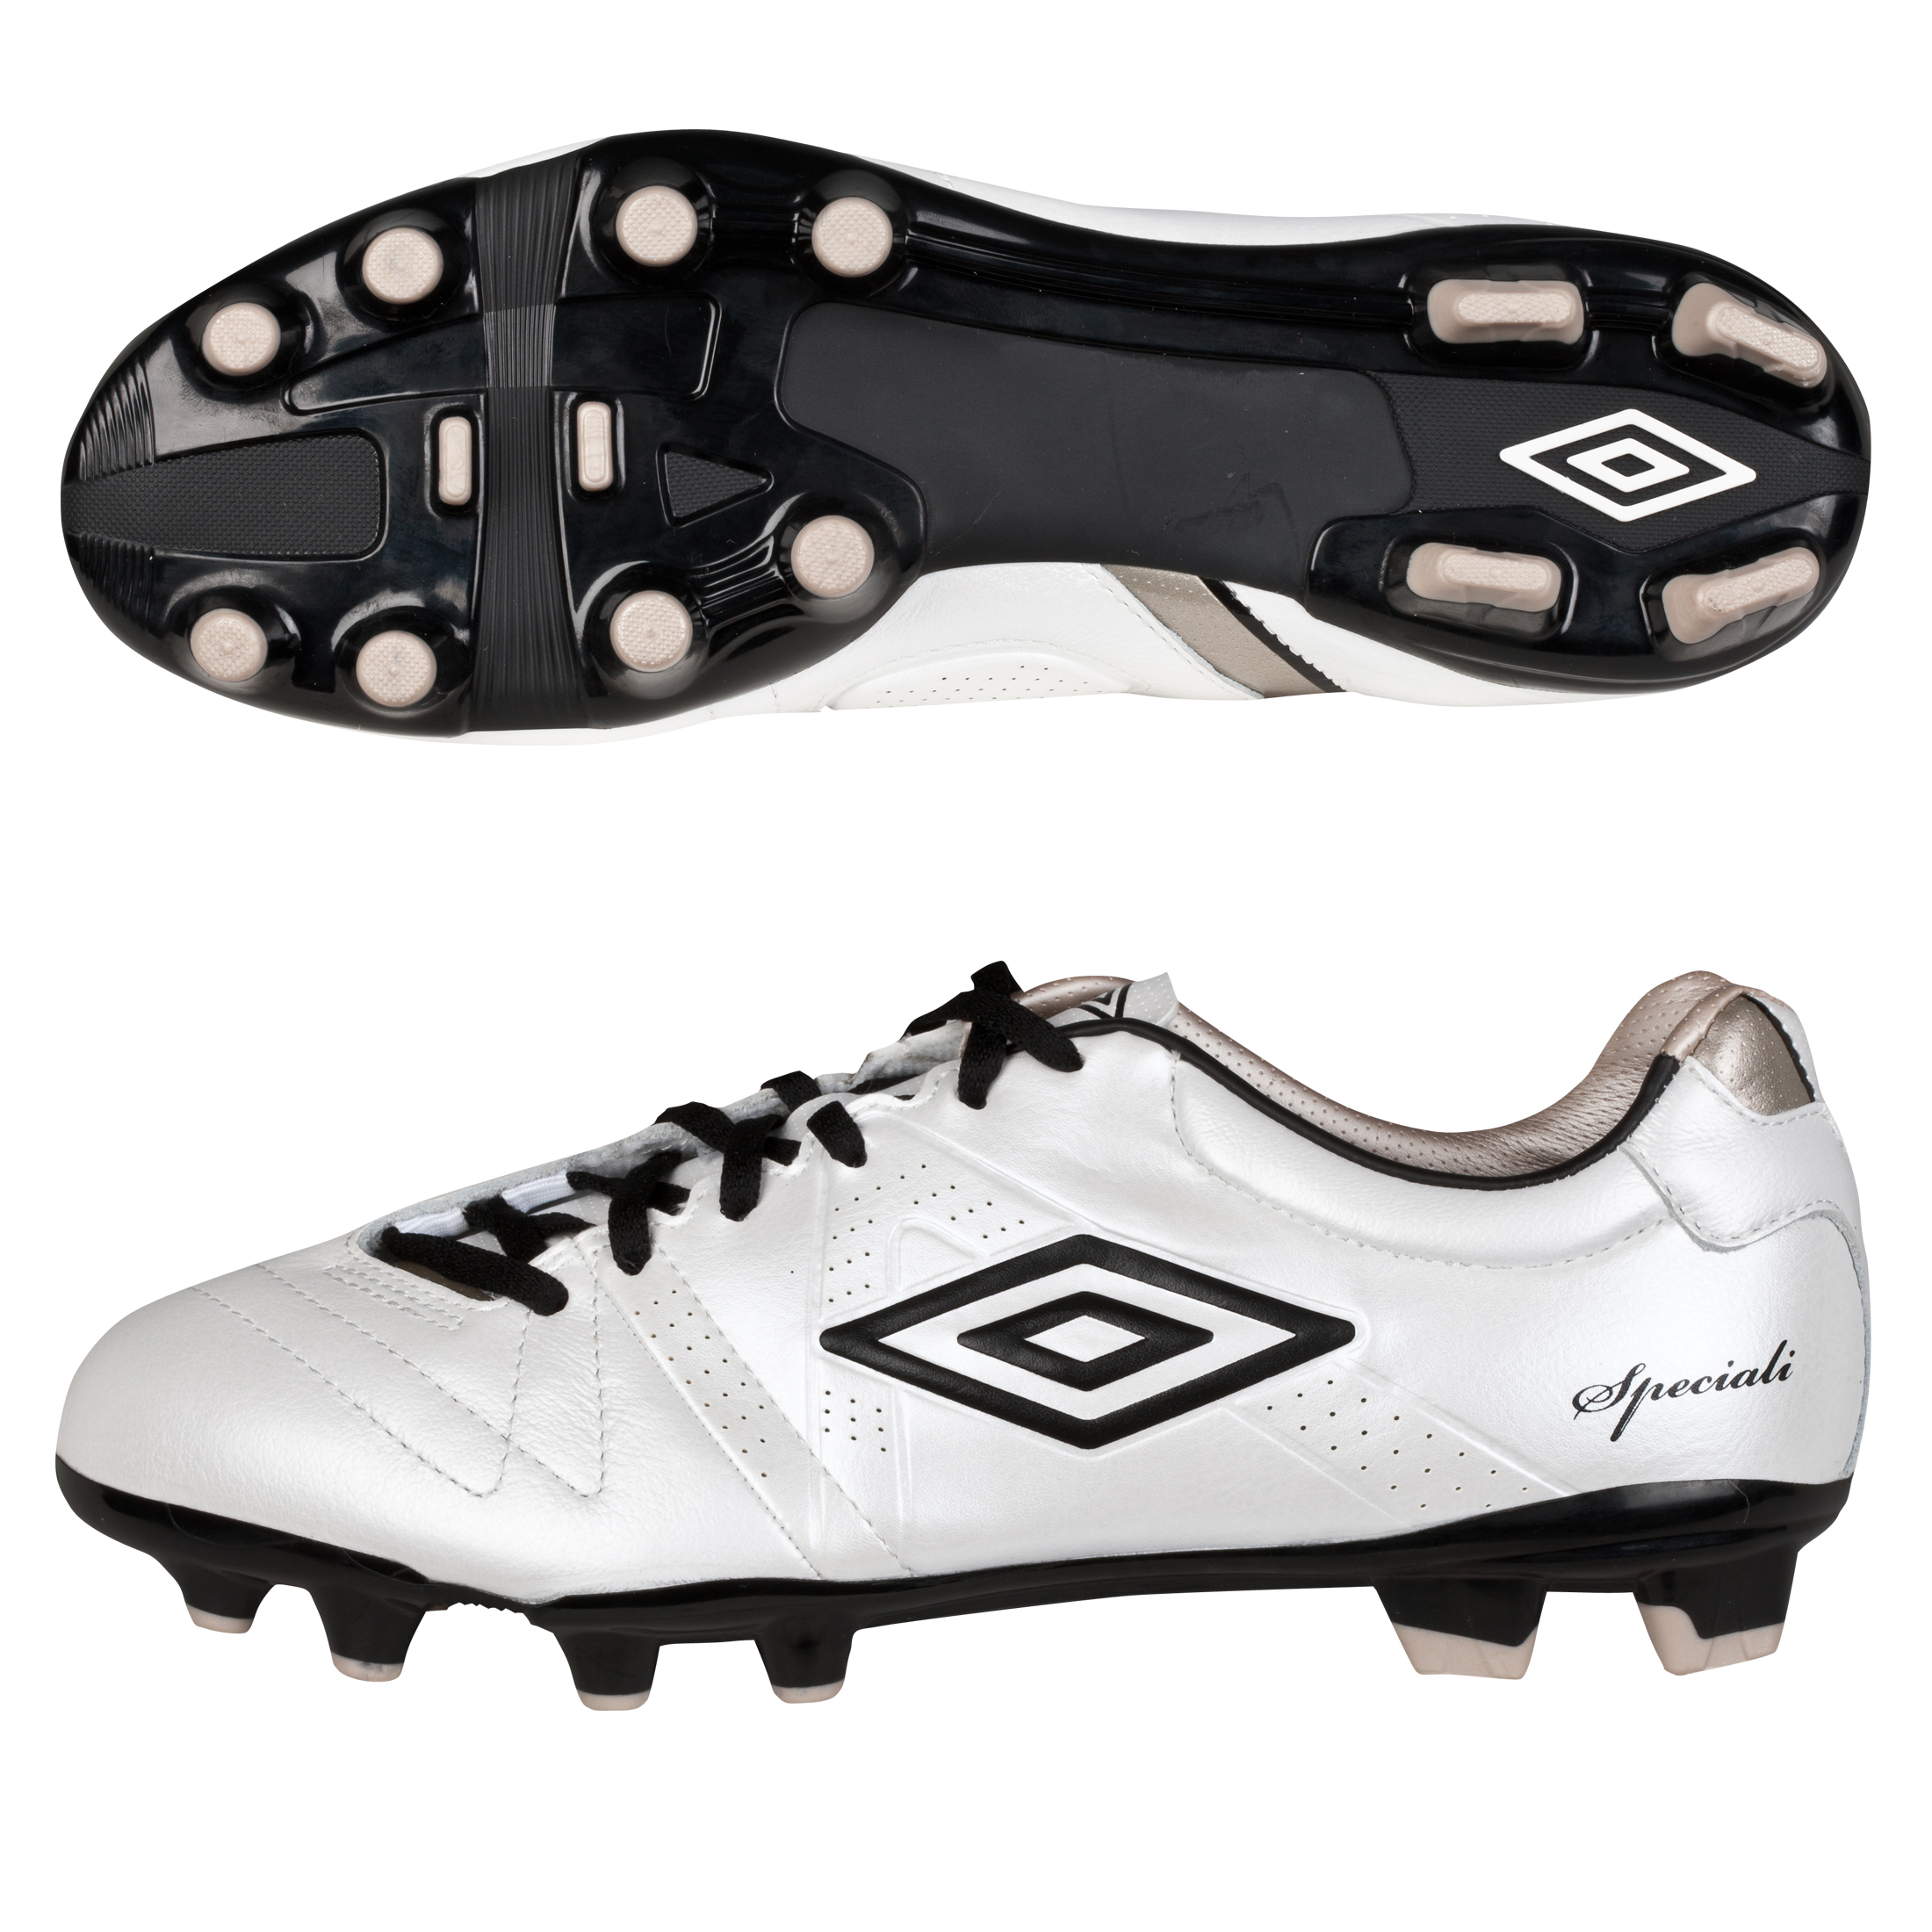 Umbro Speciali 3 Premier Hard Ground Football Boots - Pearlised White/Black/Pewter